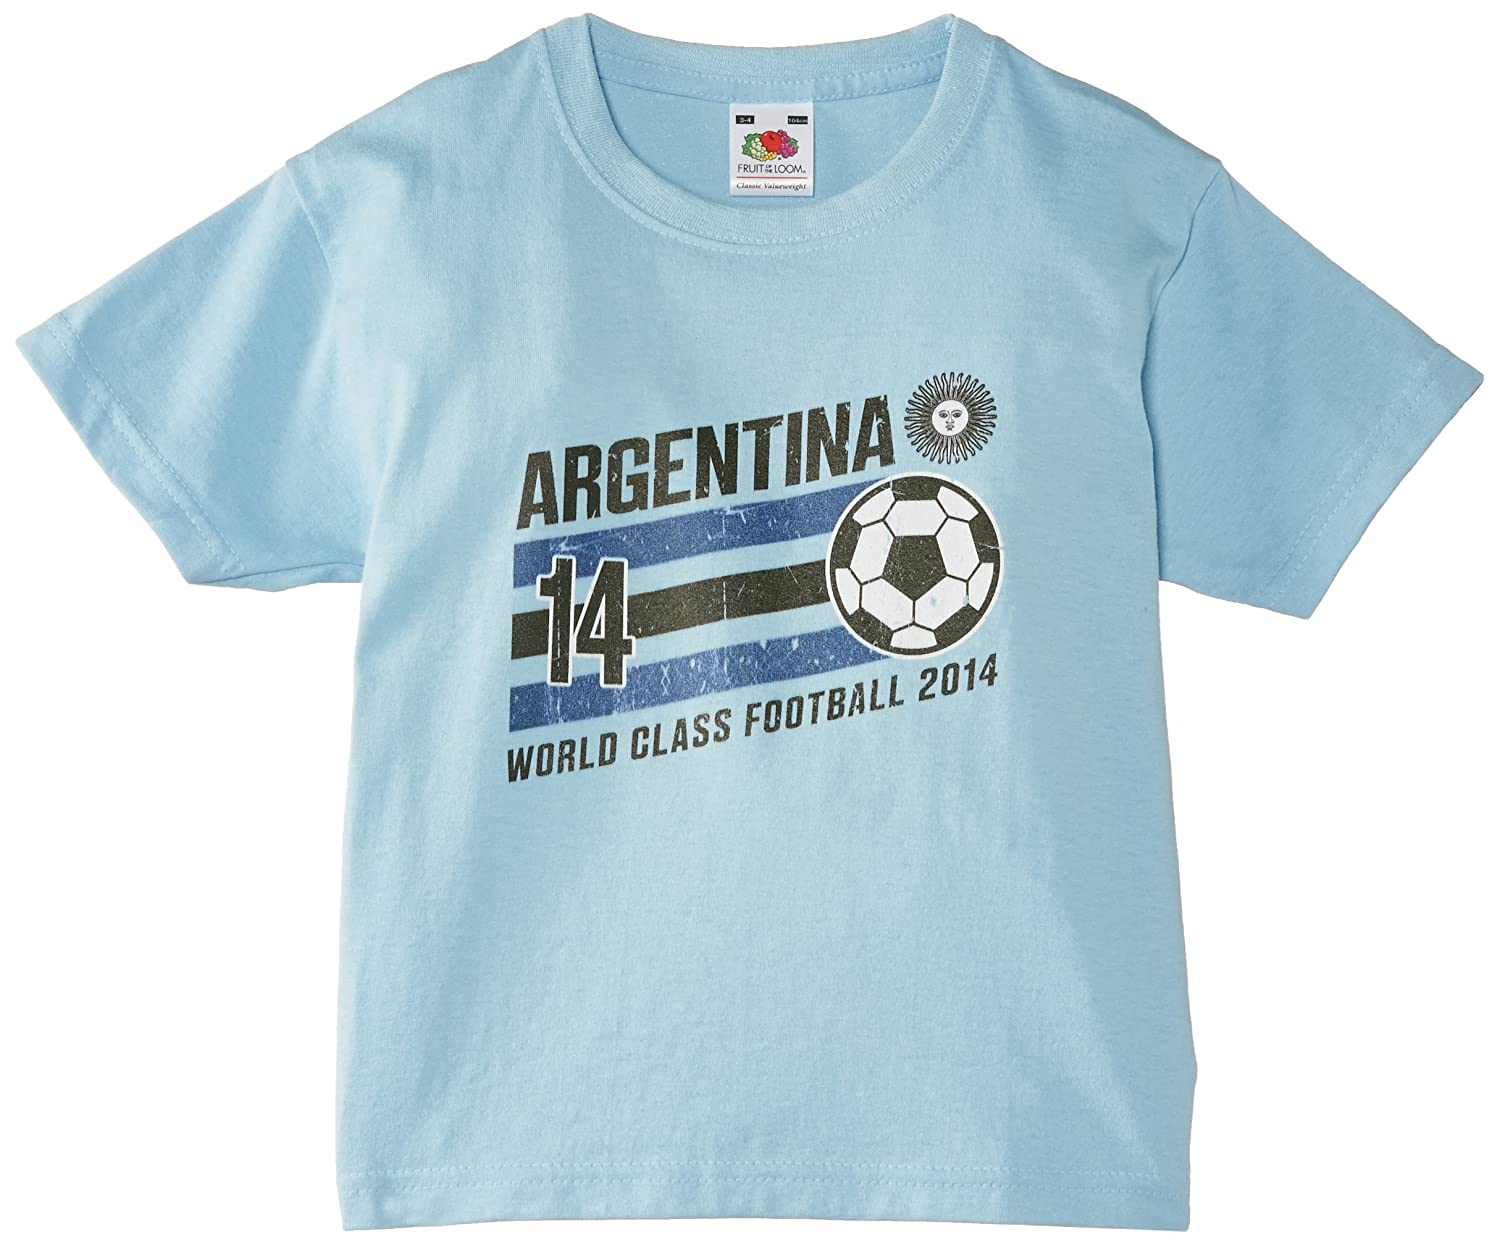 dd81f99dcc8ea Football Fan Boys Argentina Stripes Kids Short Sleeve T-Shirt:  Amazon.co.uk: Clothing